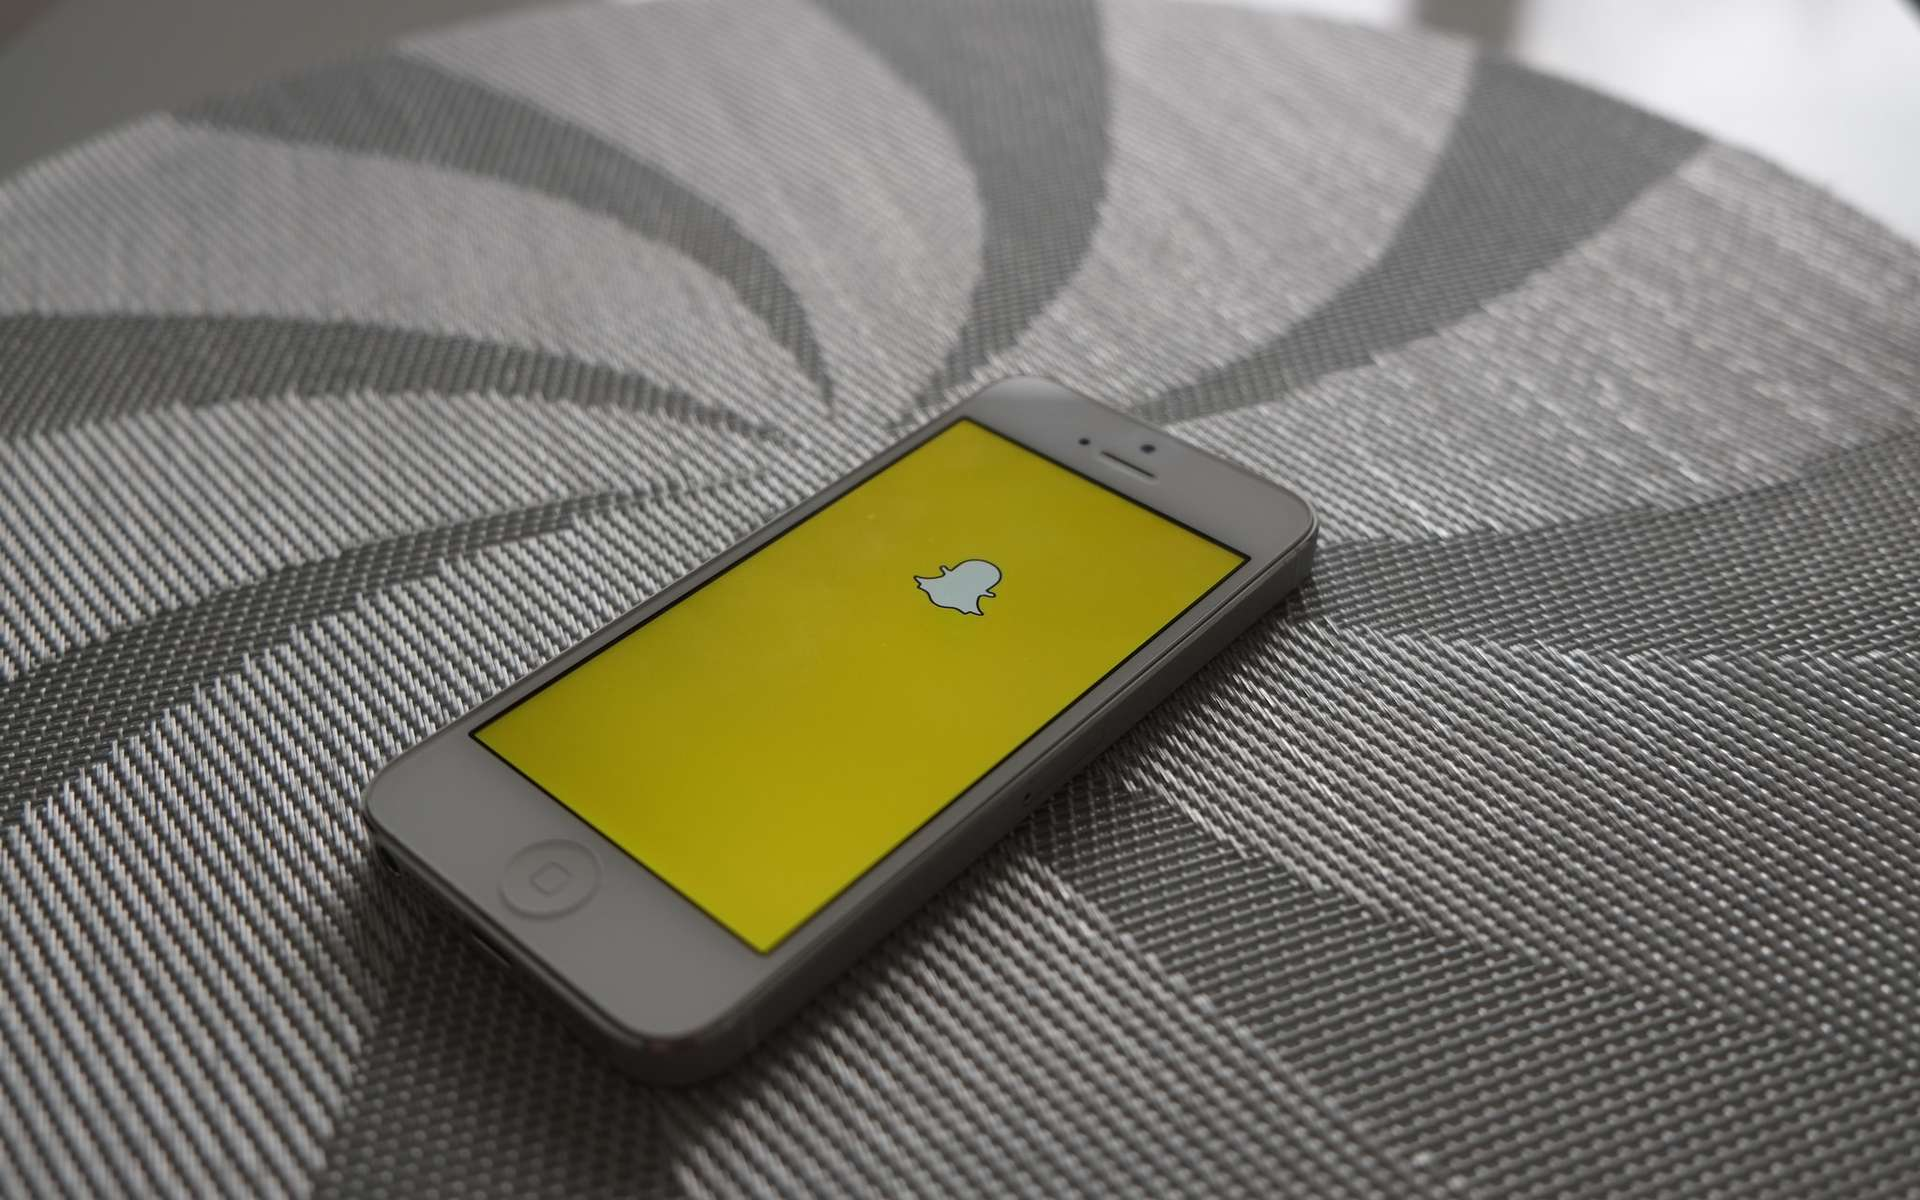 L'application Snapchat offre la possibilité de revoir un snap. © AdamPrzezdziek, Flickr, CC by-sa 2.0